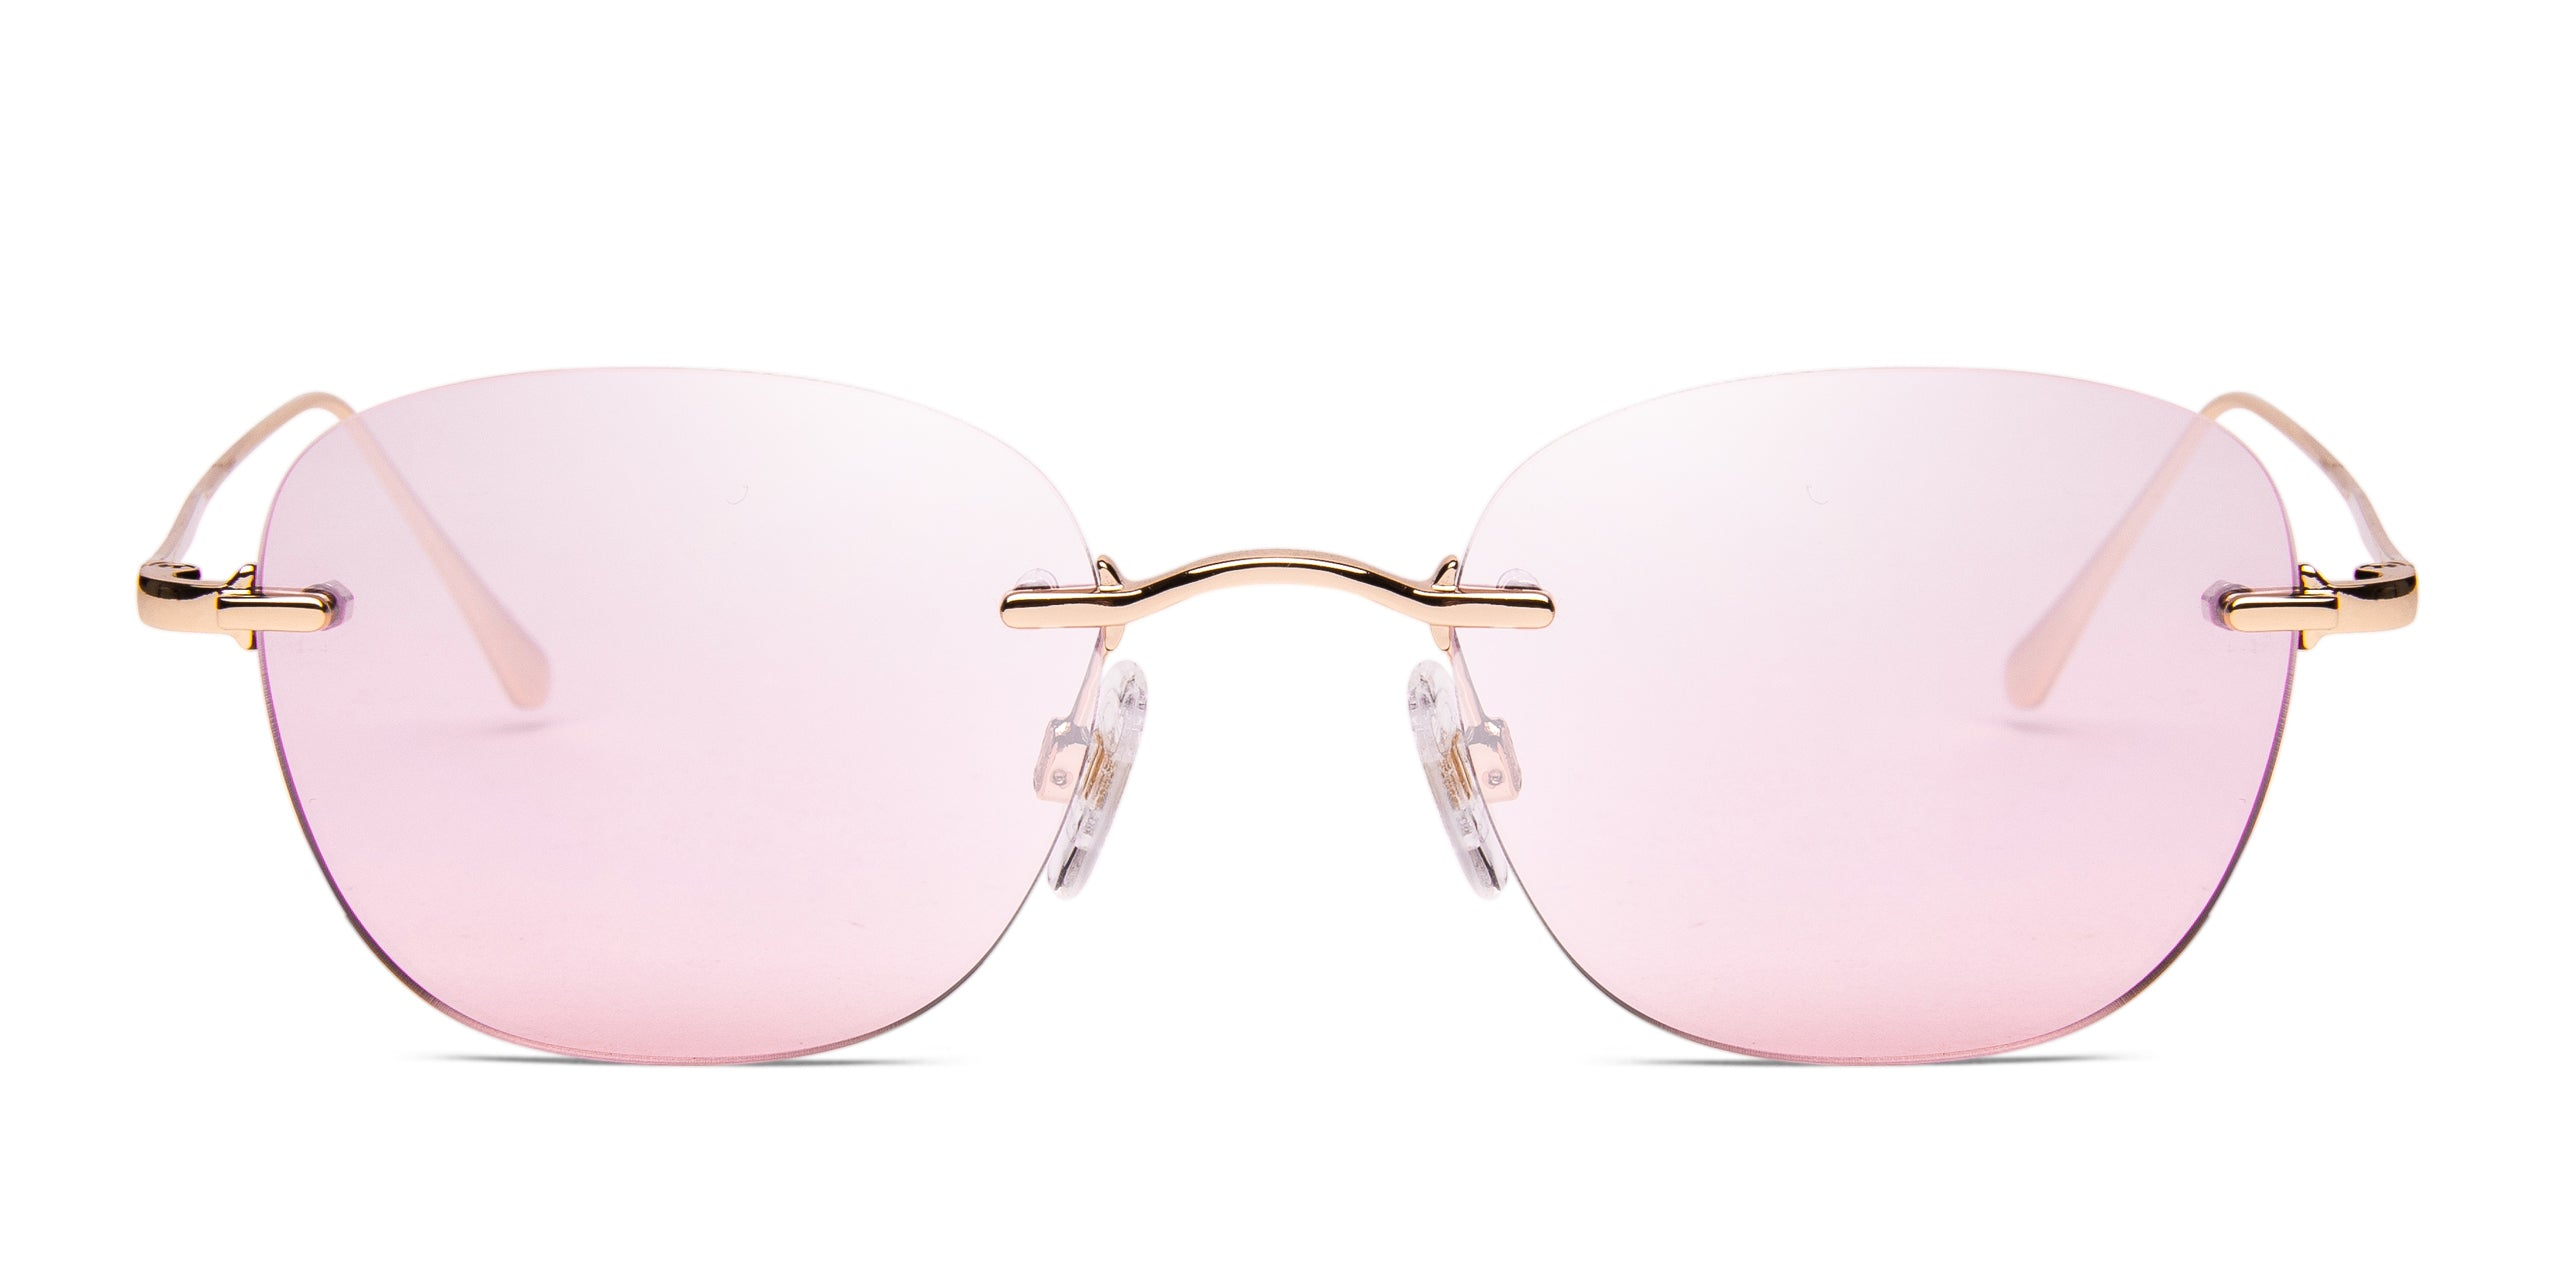 FRAME Gold LENS Gradient Silver to Pink